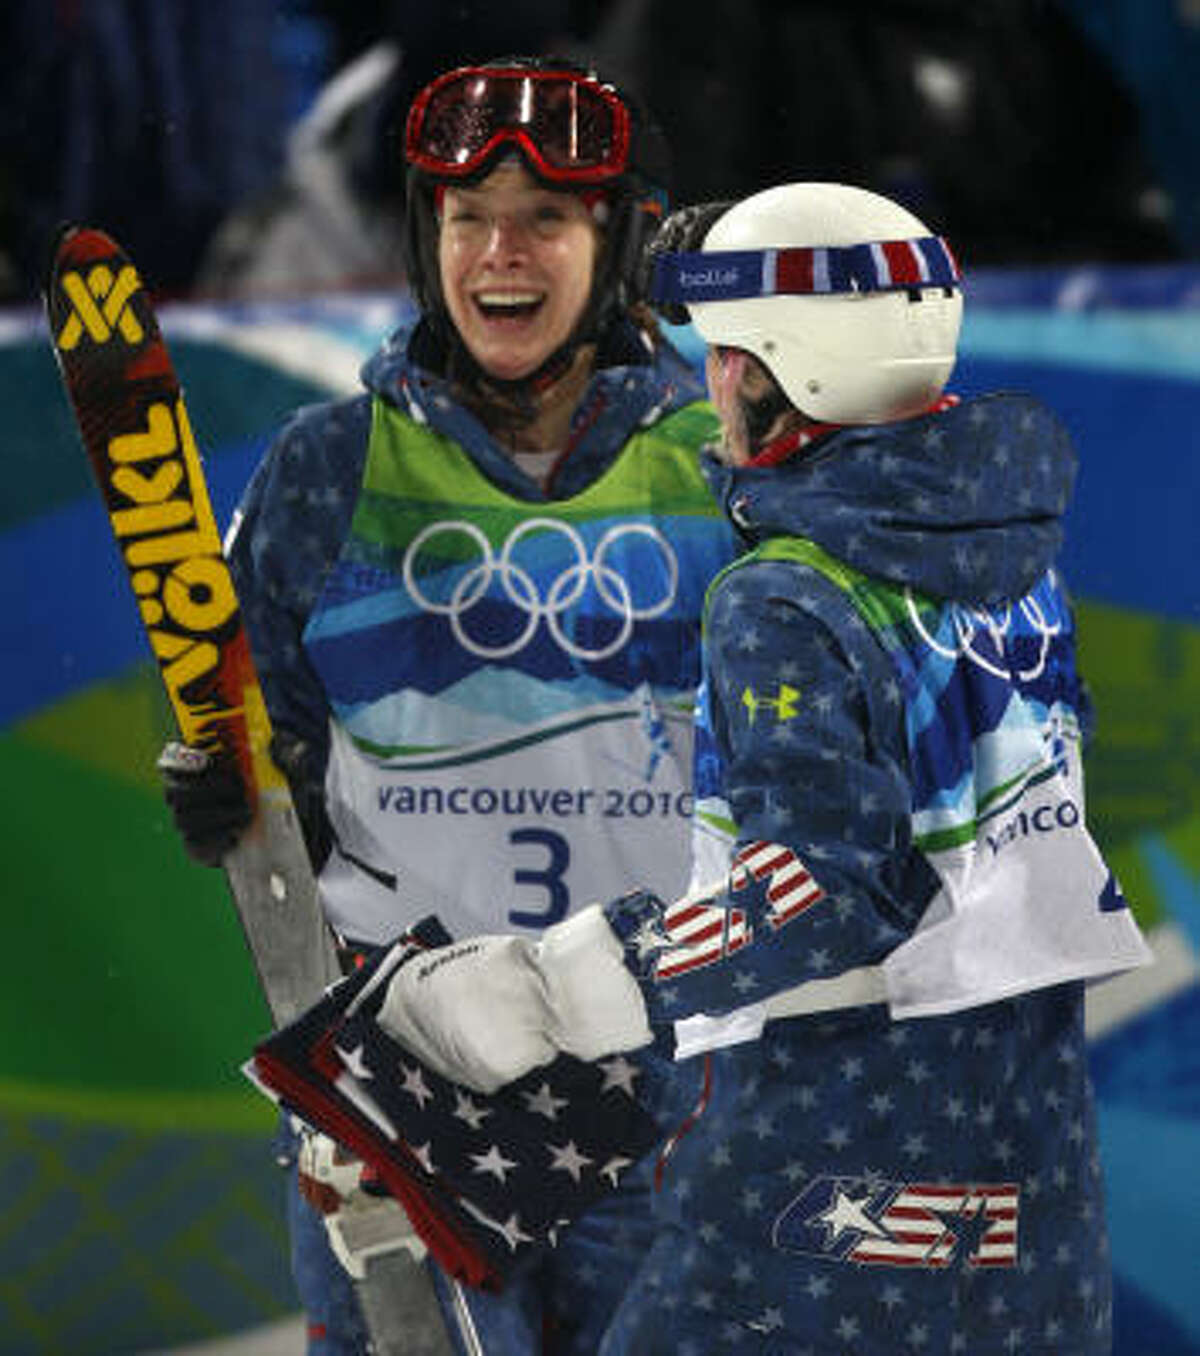 U.S. teammates Hannah Kearney, left, and Shannon Bahrke congratulate each other after finishing first and third, respectively, in the moguls competition.